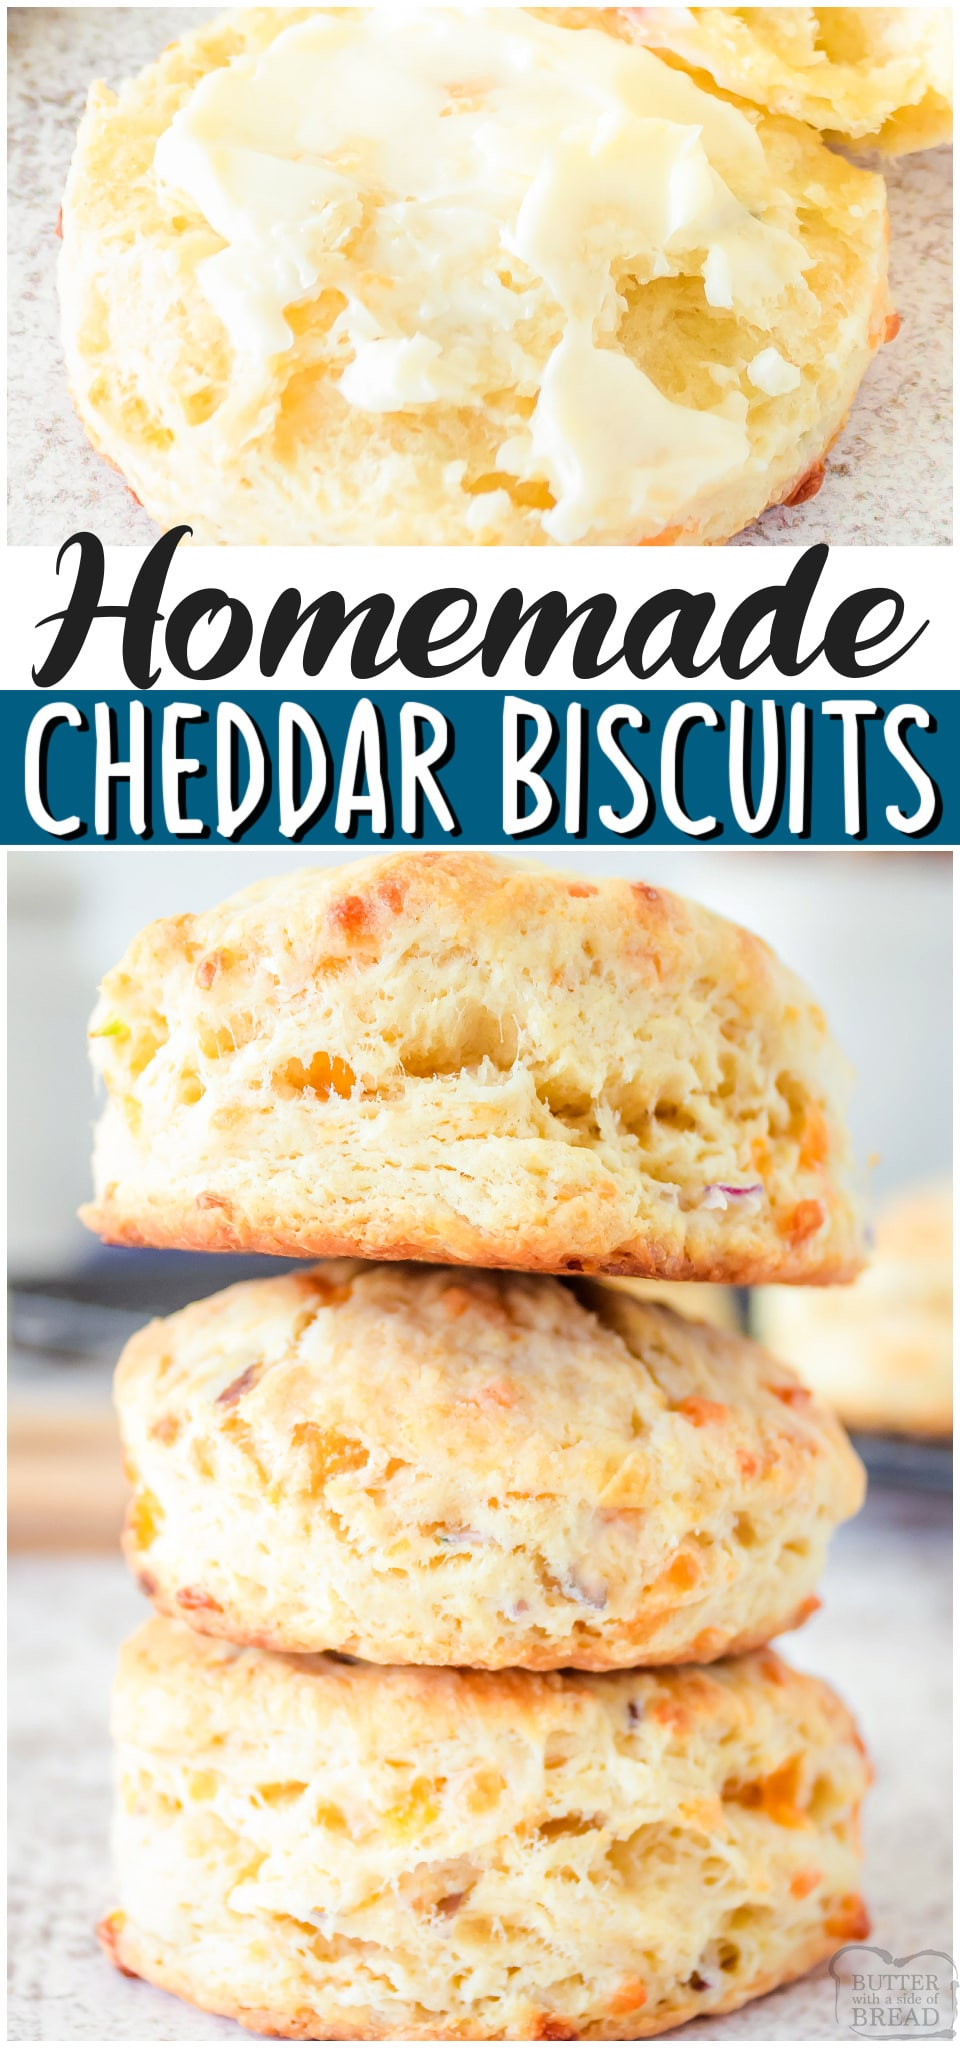 Buttery Biscuits made with butter & cheddar cheese, flavored with onion & baked to golden perfection! Soft, fluffy Cheddar Biscuit recipe perfect with just about any dinner!#biscuits #cheddar #homemade #baking #bread #easyrecipe from BUTTER WITH A SIDE OF BREAD